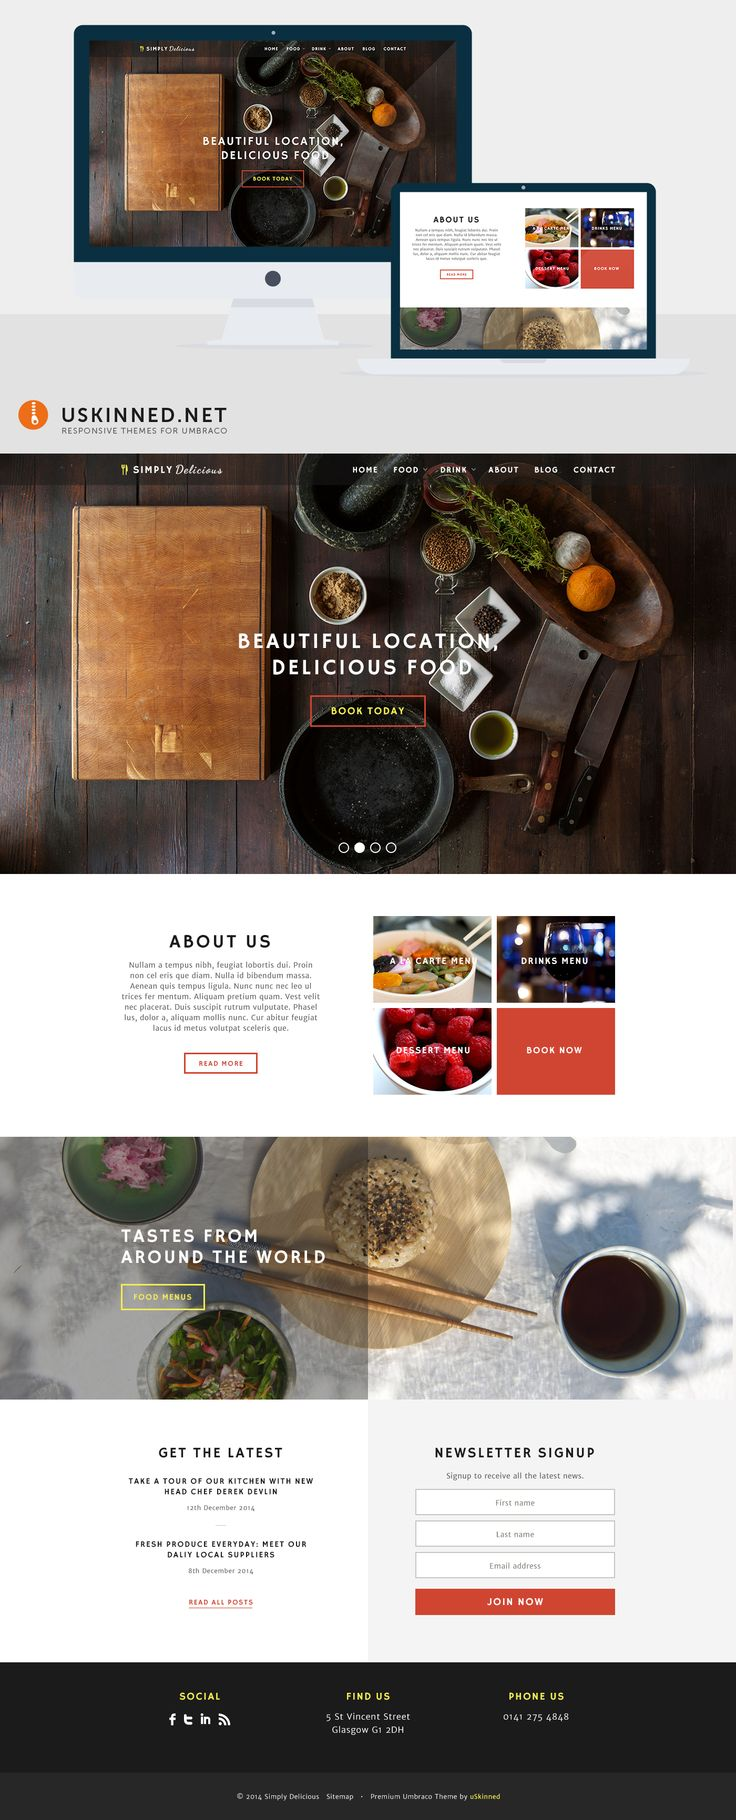 Simply Delicious is fantastic new restaurant Umbraco theme coming soon to uSkinned.  https://uskinned.net/themes/simply-delicious/  #responsive #umbraco #restaurants #restaurant #wordpress #themes